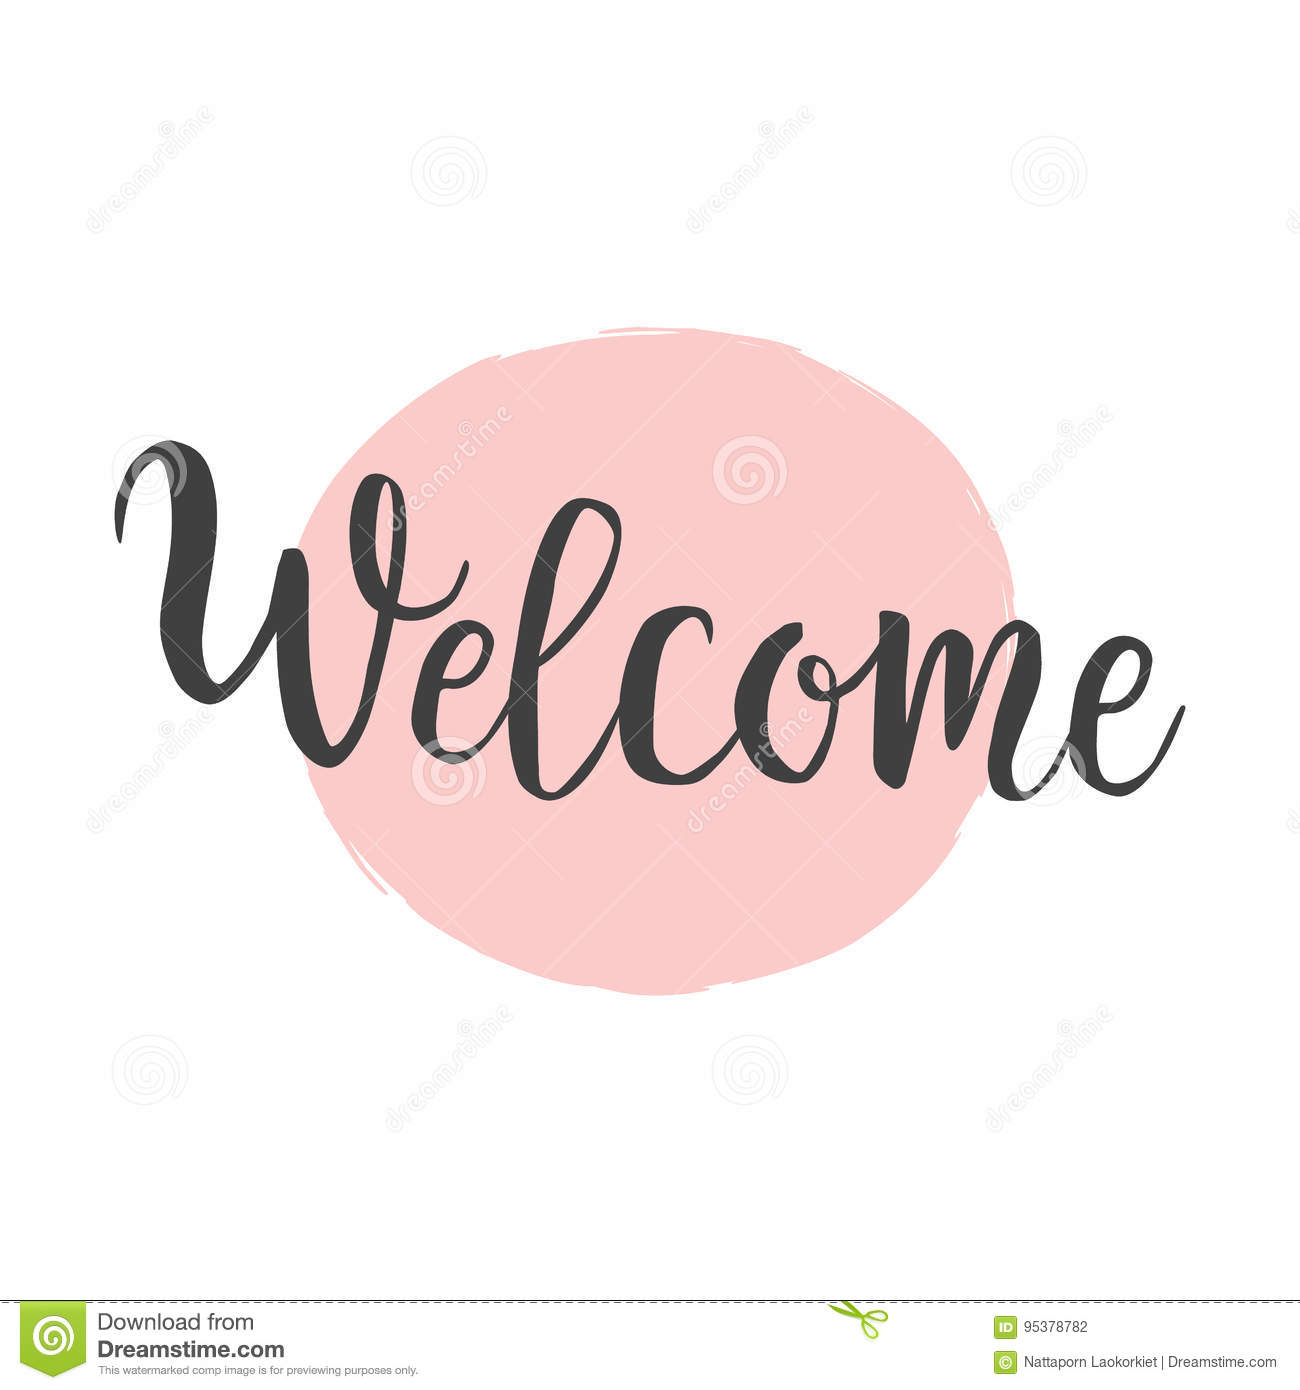 Welcome calligraphy brush lettering on pink hand drawn